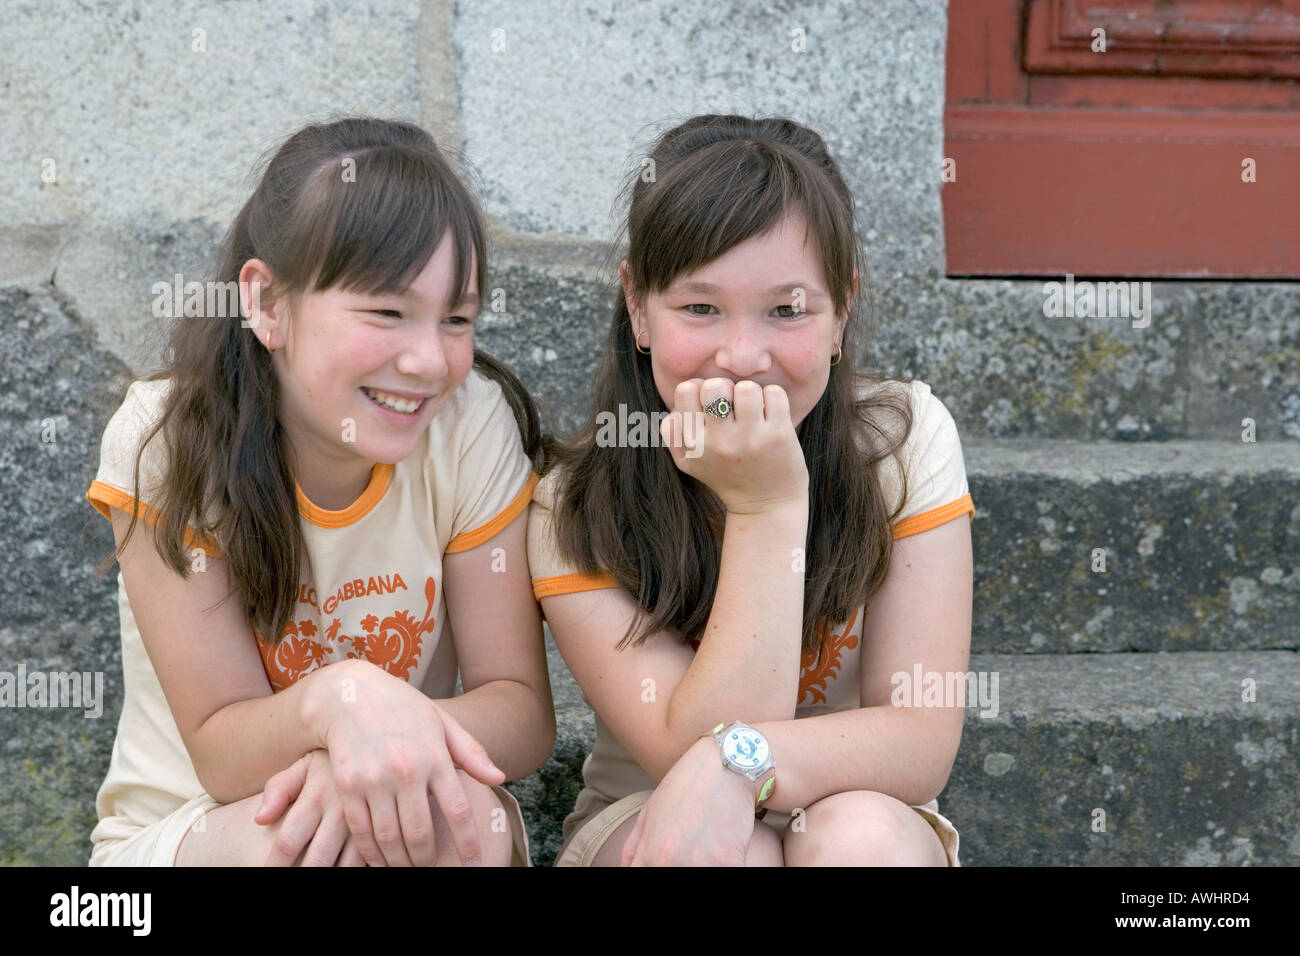 A pair of twin sisters in school uniforms sit on stone steps near their school - Stock Image